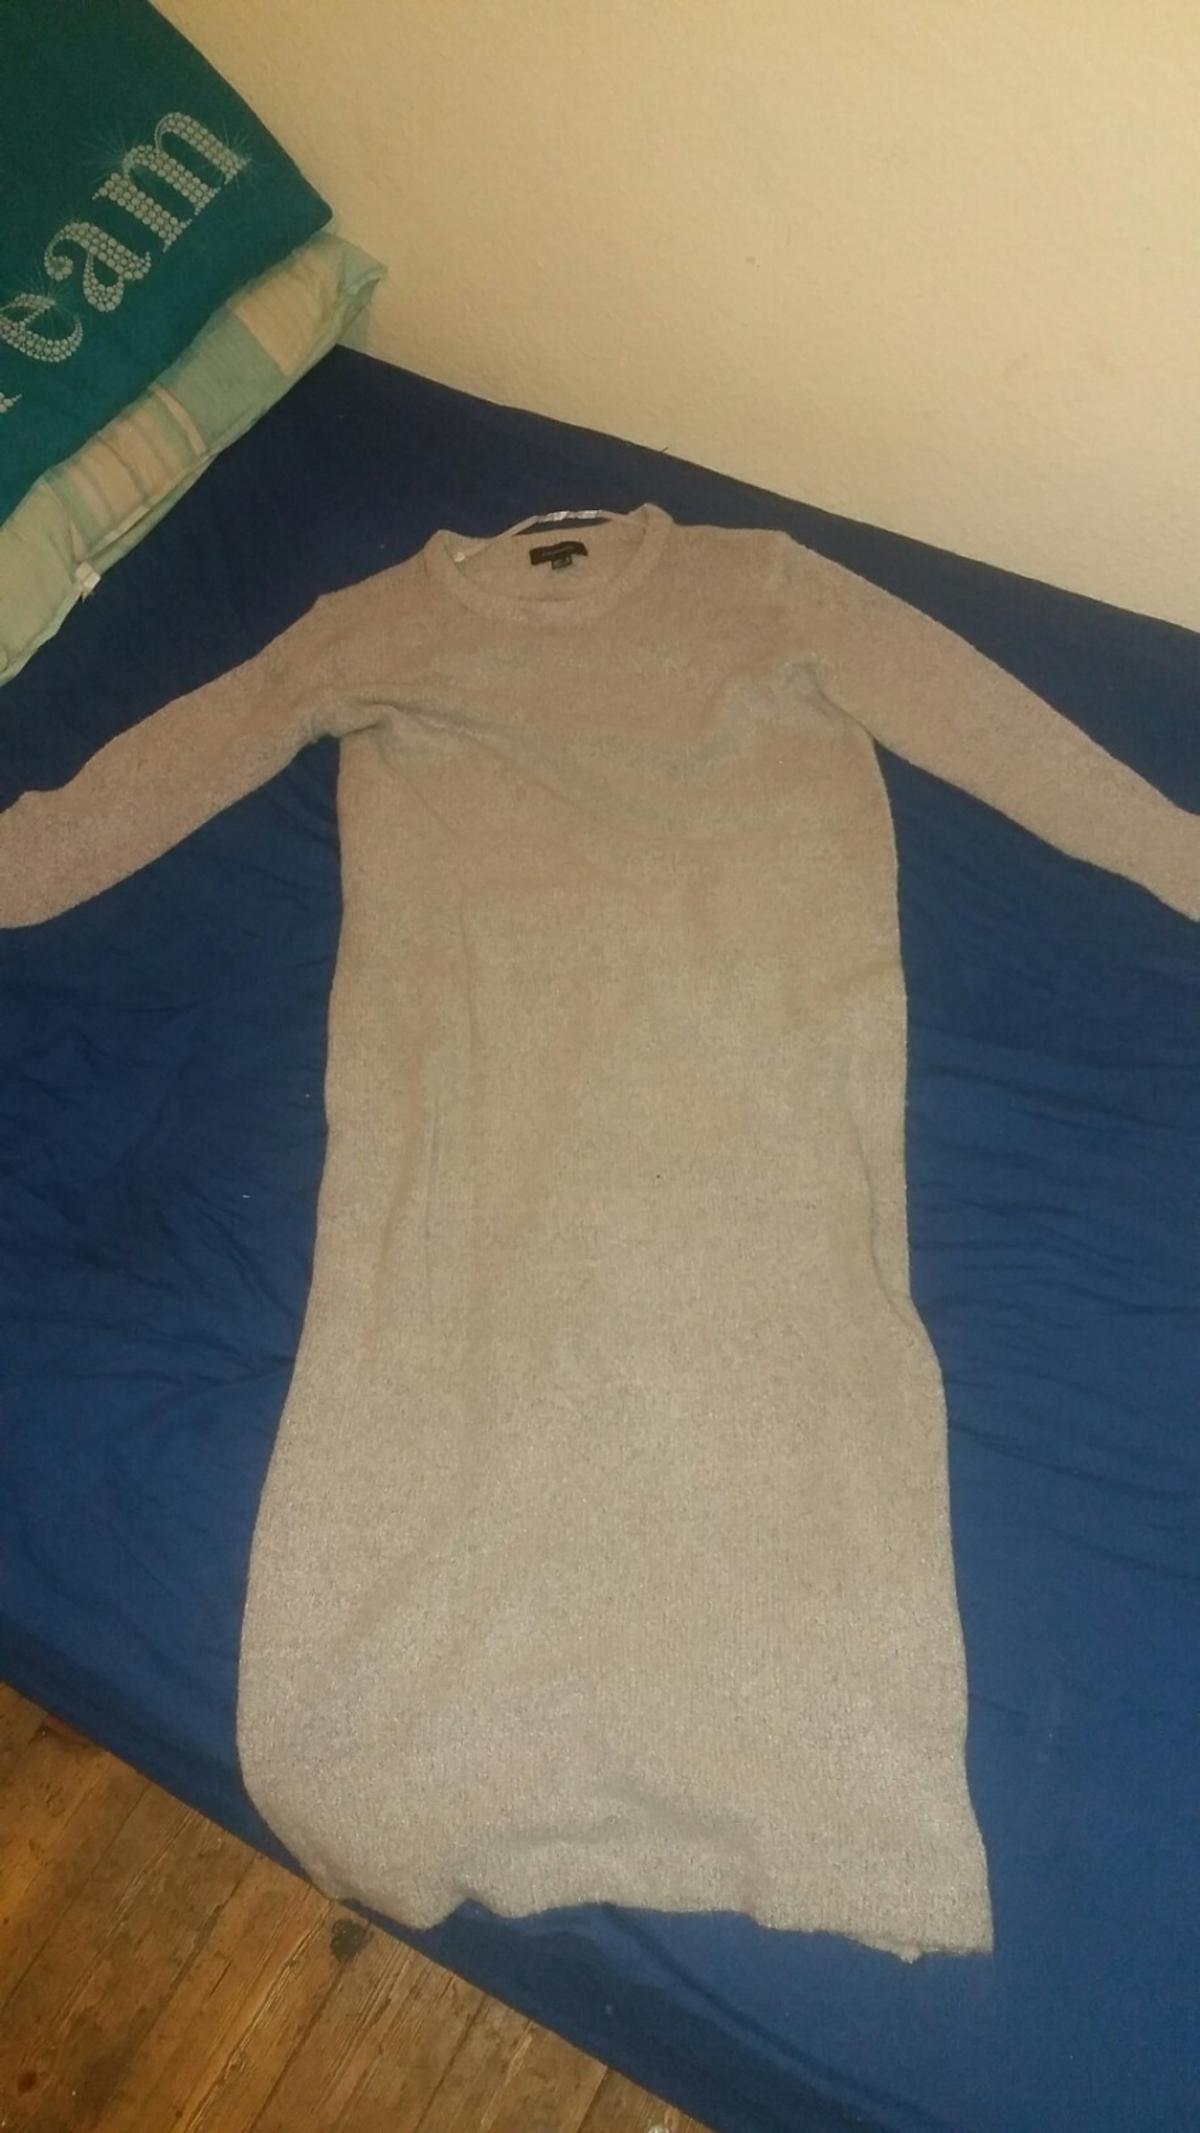 colour grey never been worn collection only